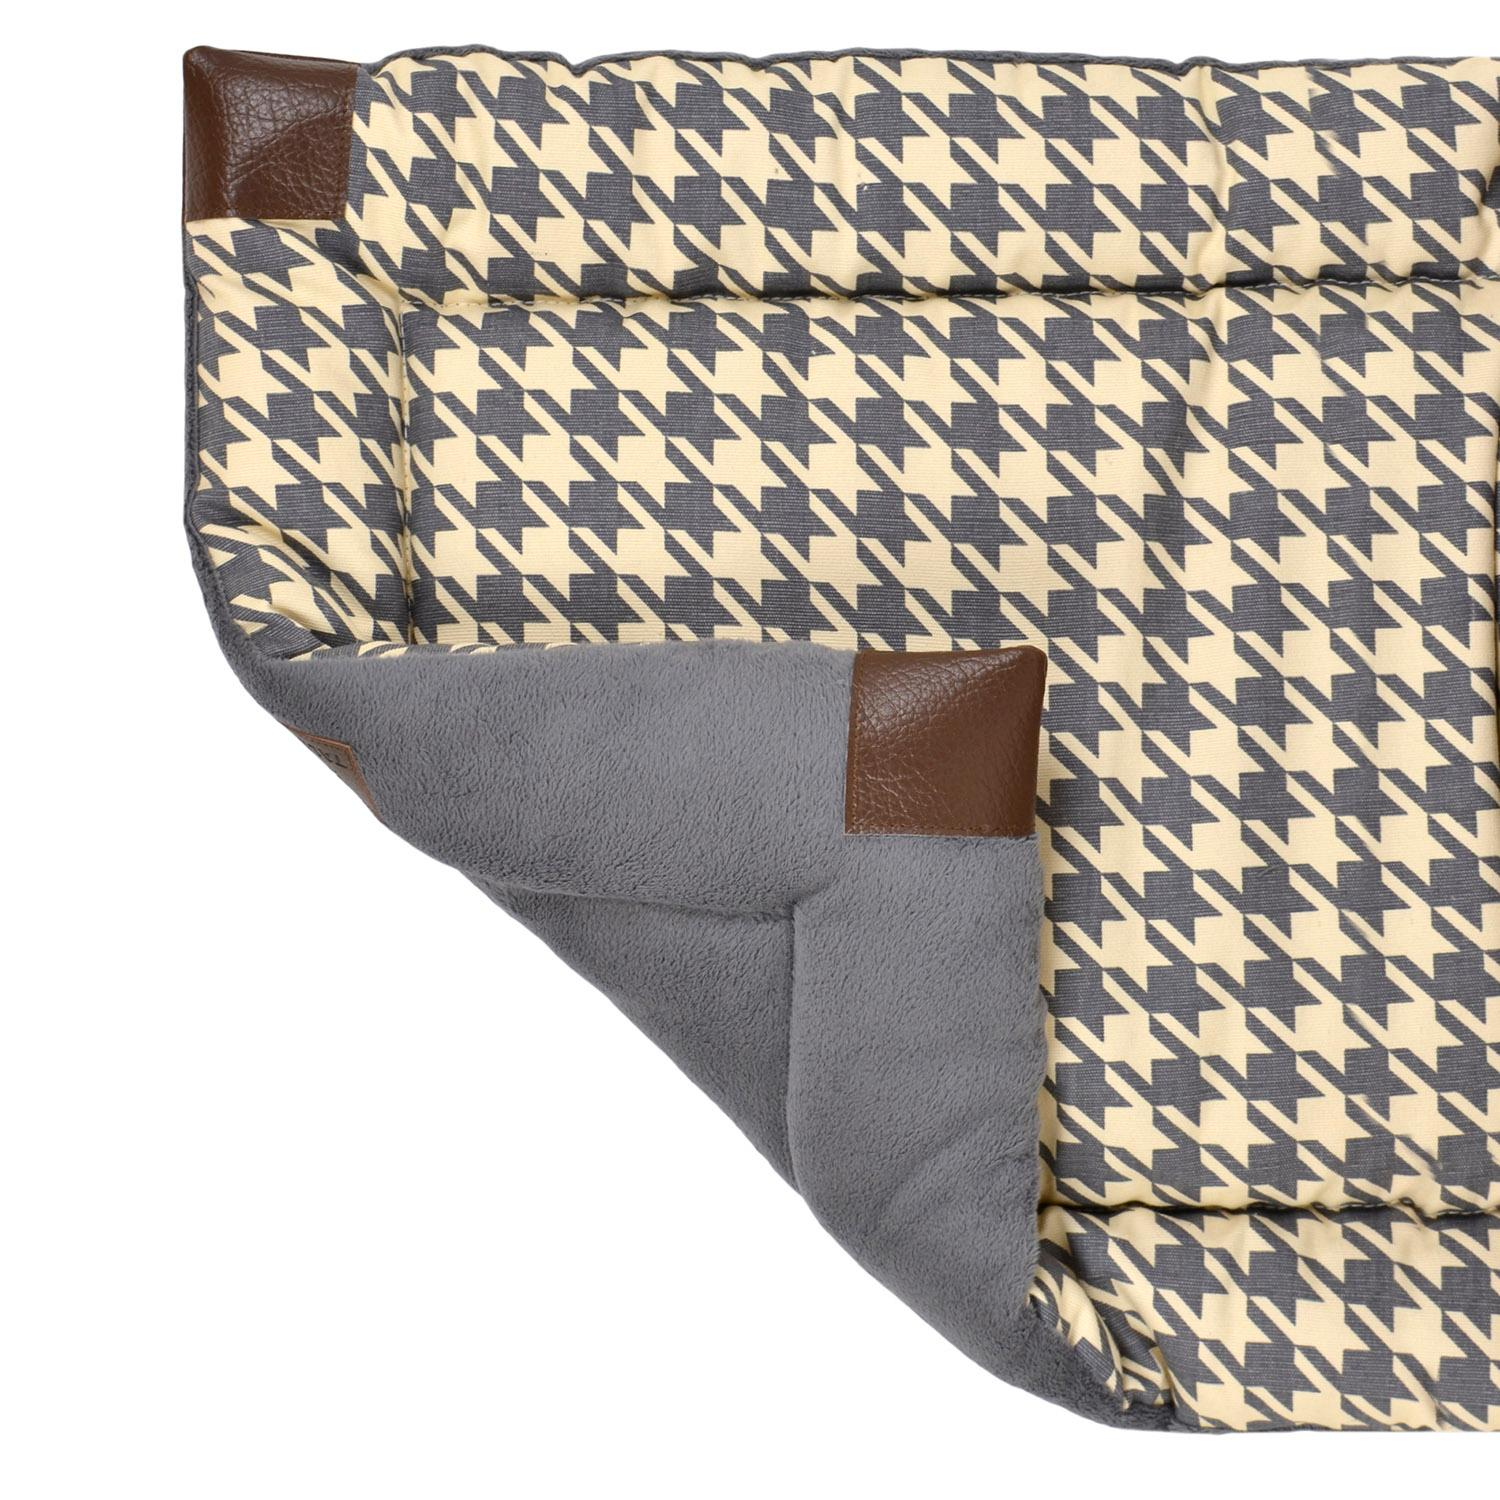 Tall Tails Fleece Blanket Top Dog Bed - Houndstooth